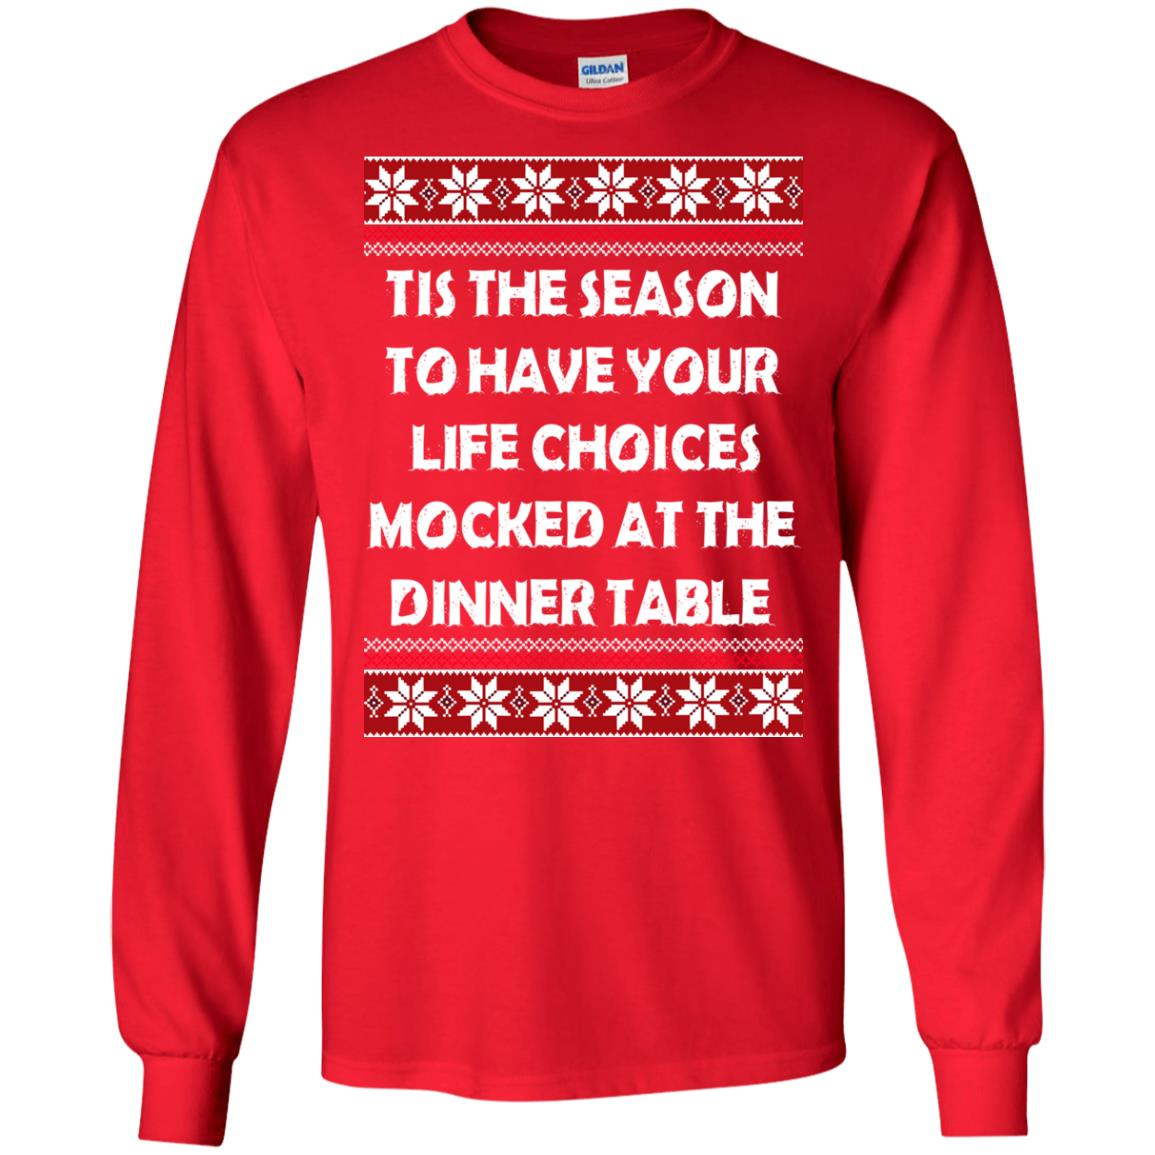 image 5892 - Tis The Season To Have Your Life Choices Mocked Christmas Sweater, Hoodie